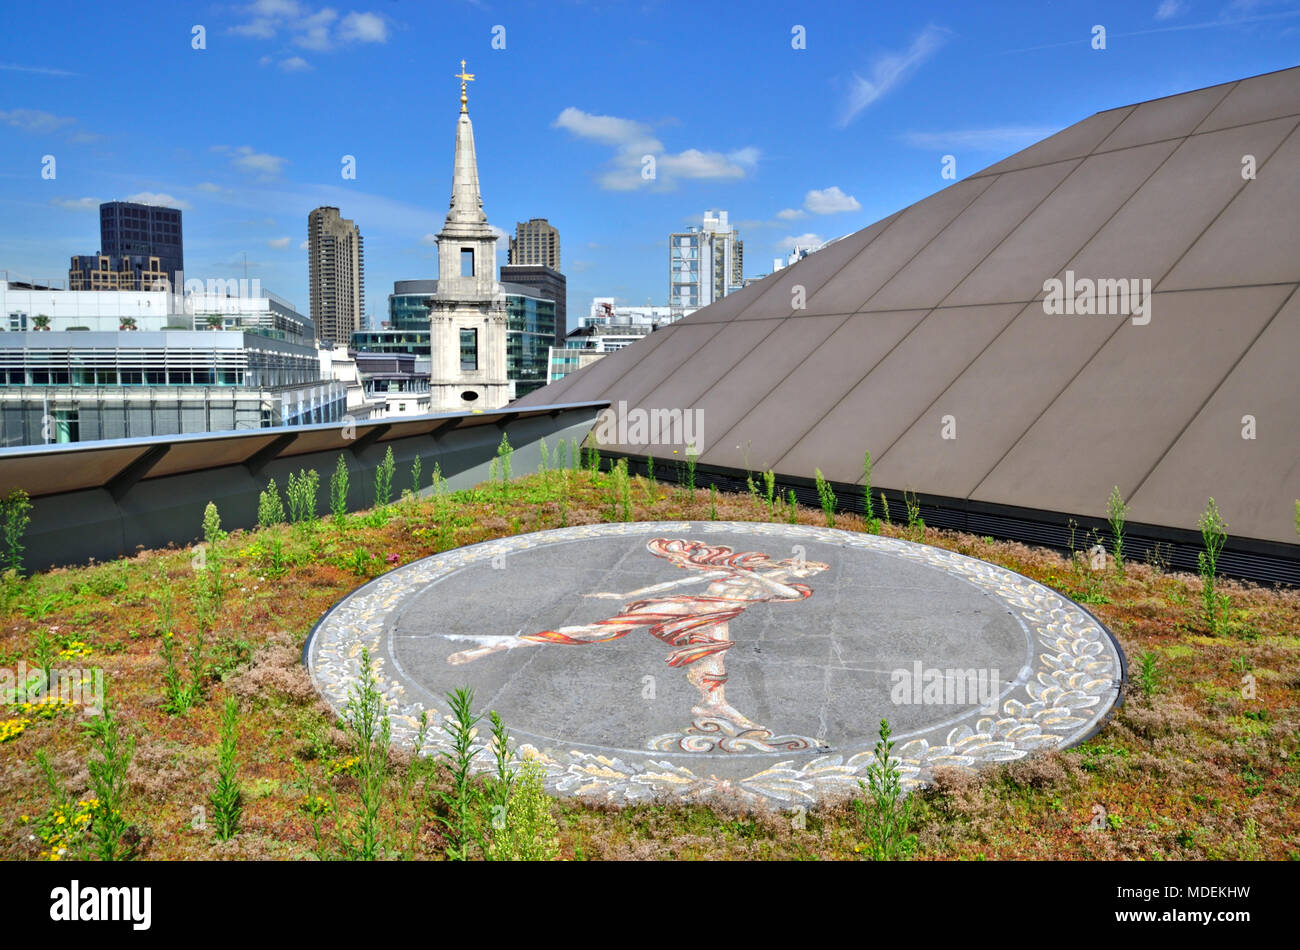 London, England, UK. Rooftop of One New Change, opposits St Paul's Cathedral. 'Ariel' mosaic by Boris Anrep and Spire of St Vedast Alias Foster - Stock Image